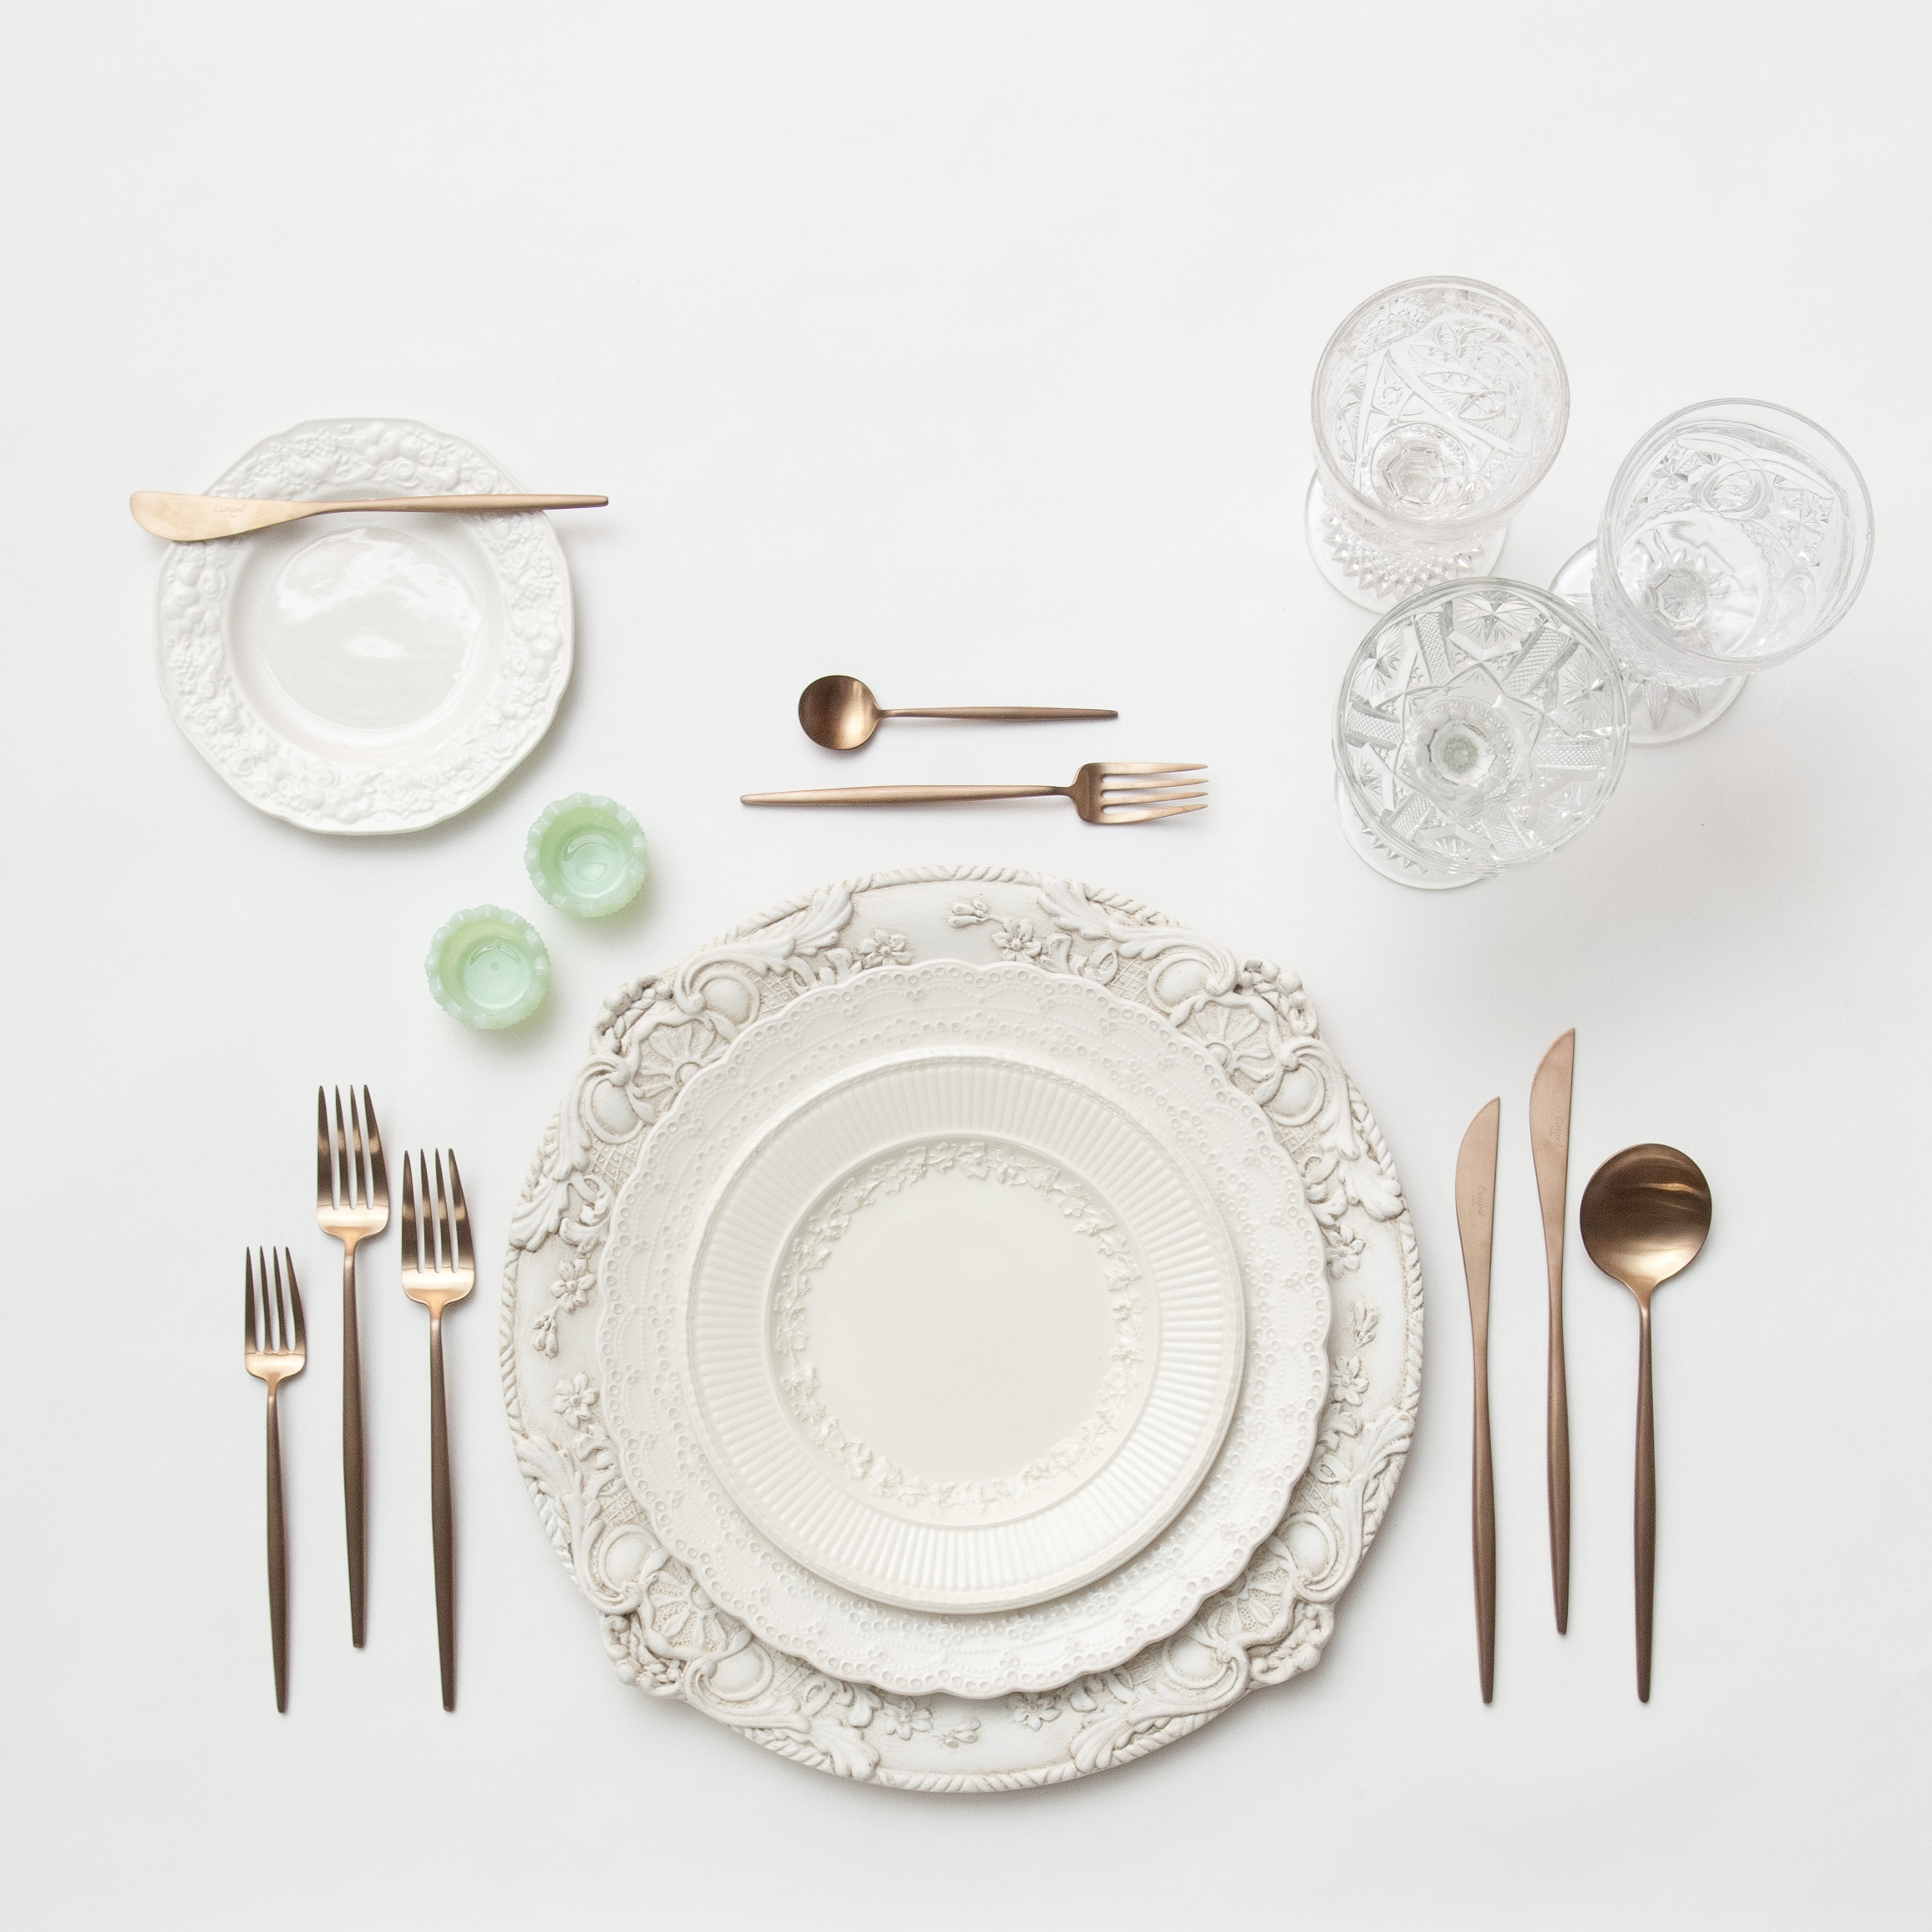 RENT: Verona Chargers in Antique White + White Collection Vintage China + Moon Flatware in Brushed Rose Gold + Early American Pressed Glass Goblets + Vintage Champagne Coupes + Jadeite Crystal Salt Cellars  SHOP:Verona Chargers in Antique White +Moon Flatware in Brushed Rose Gold